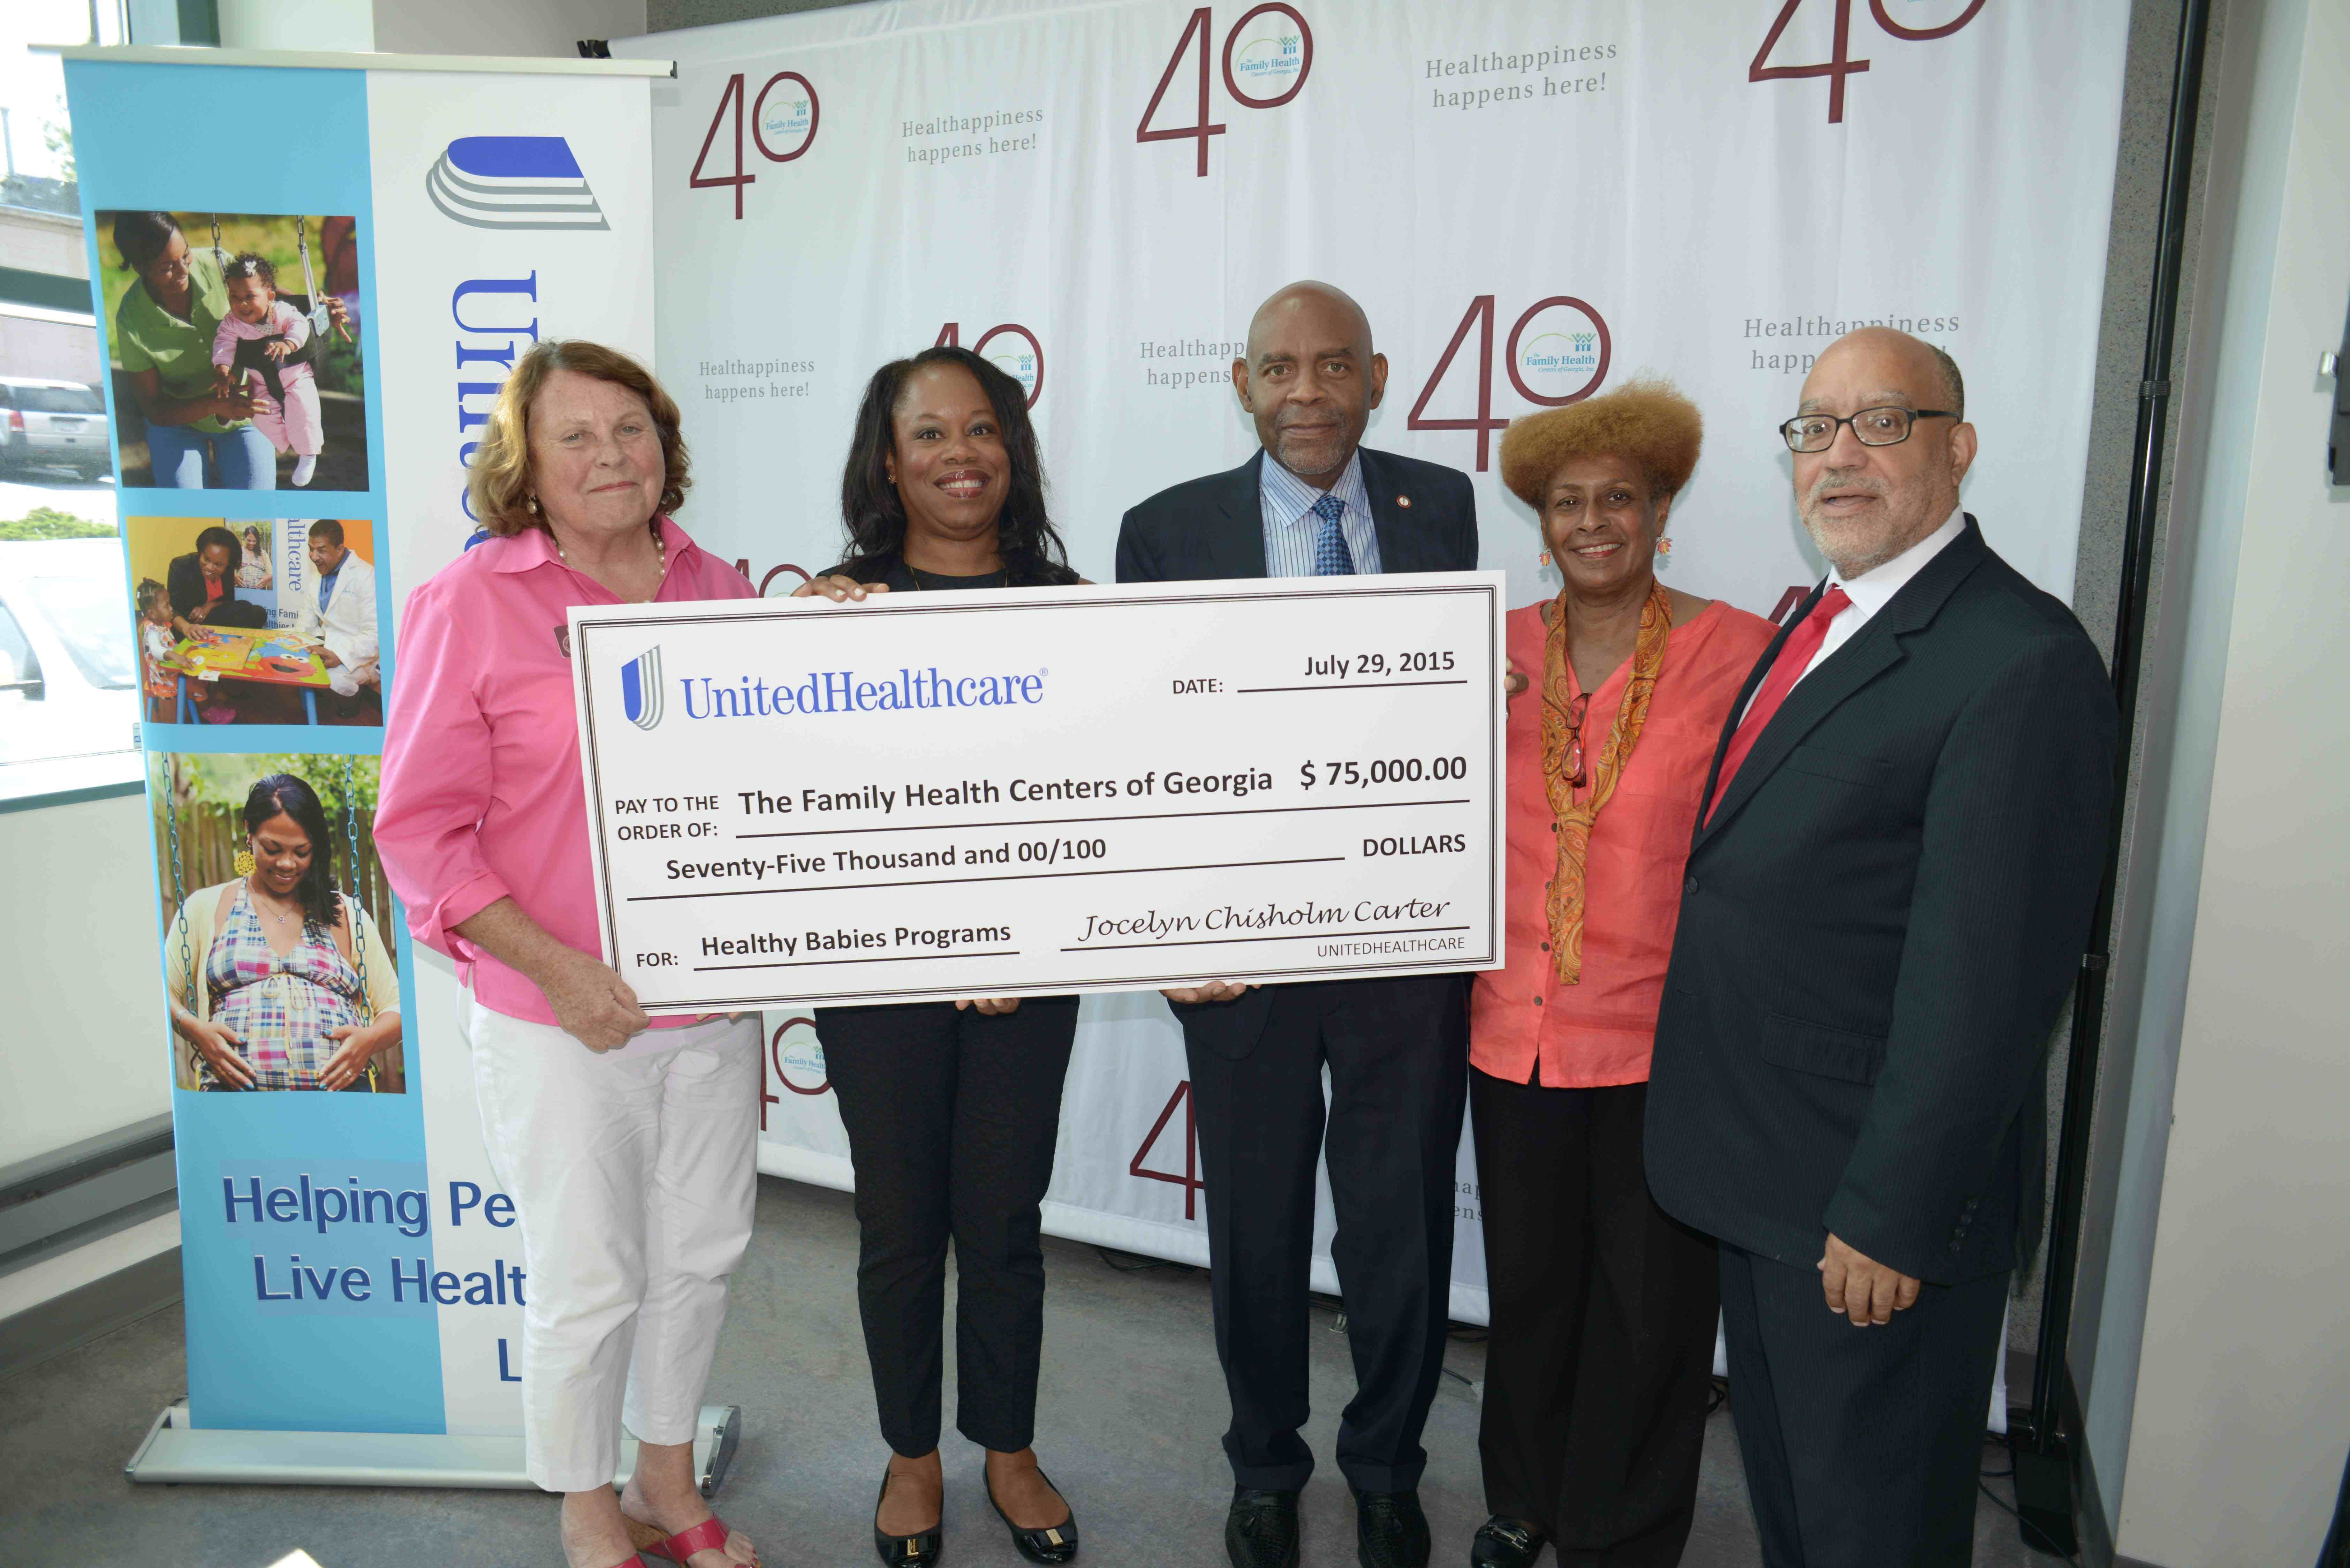 UnitedHealthCare grants $75,000 to Gerogia's Family Health Care Centre